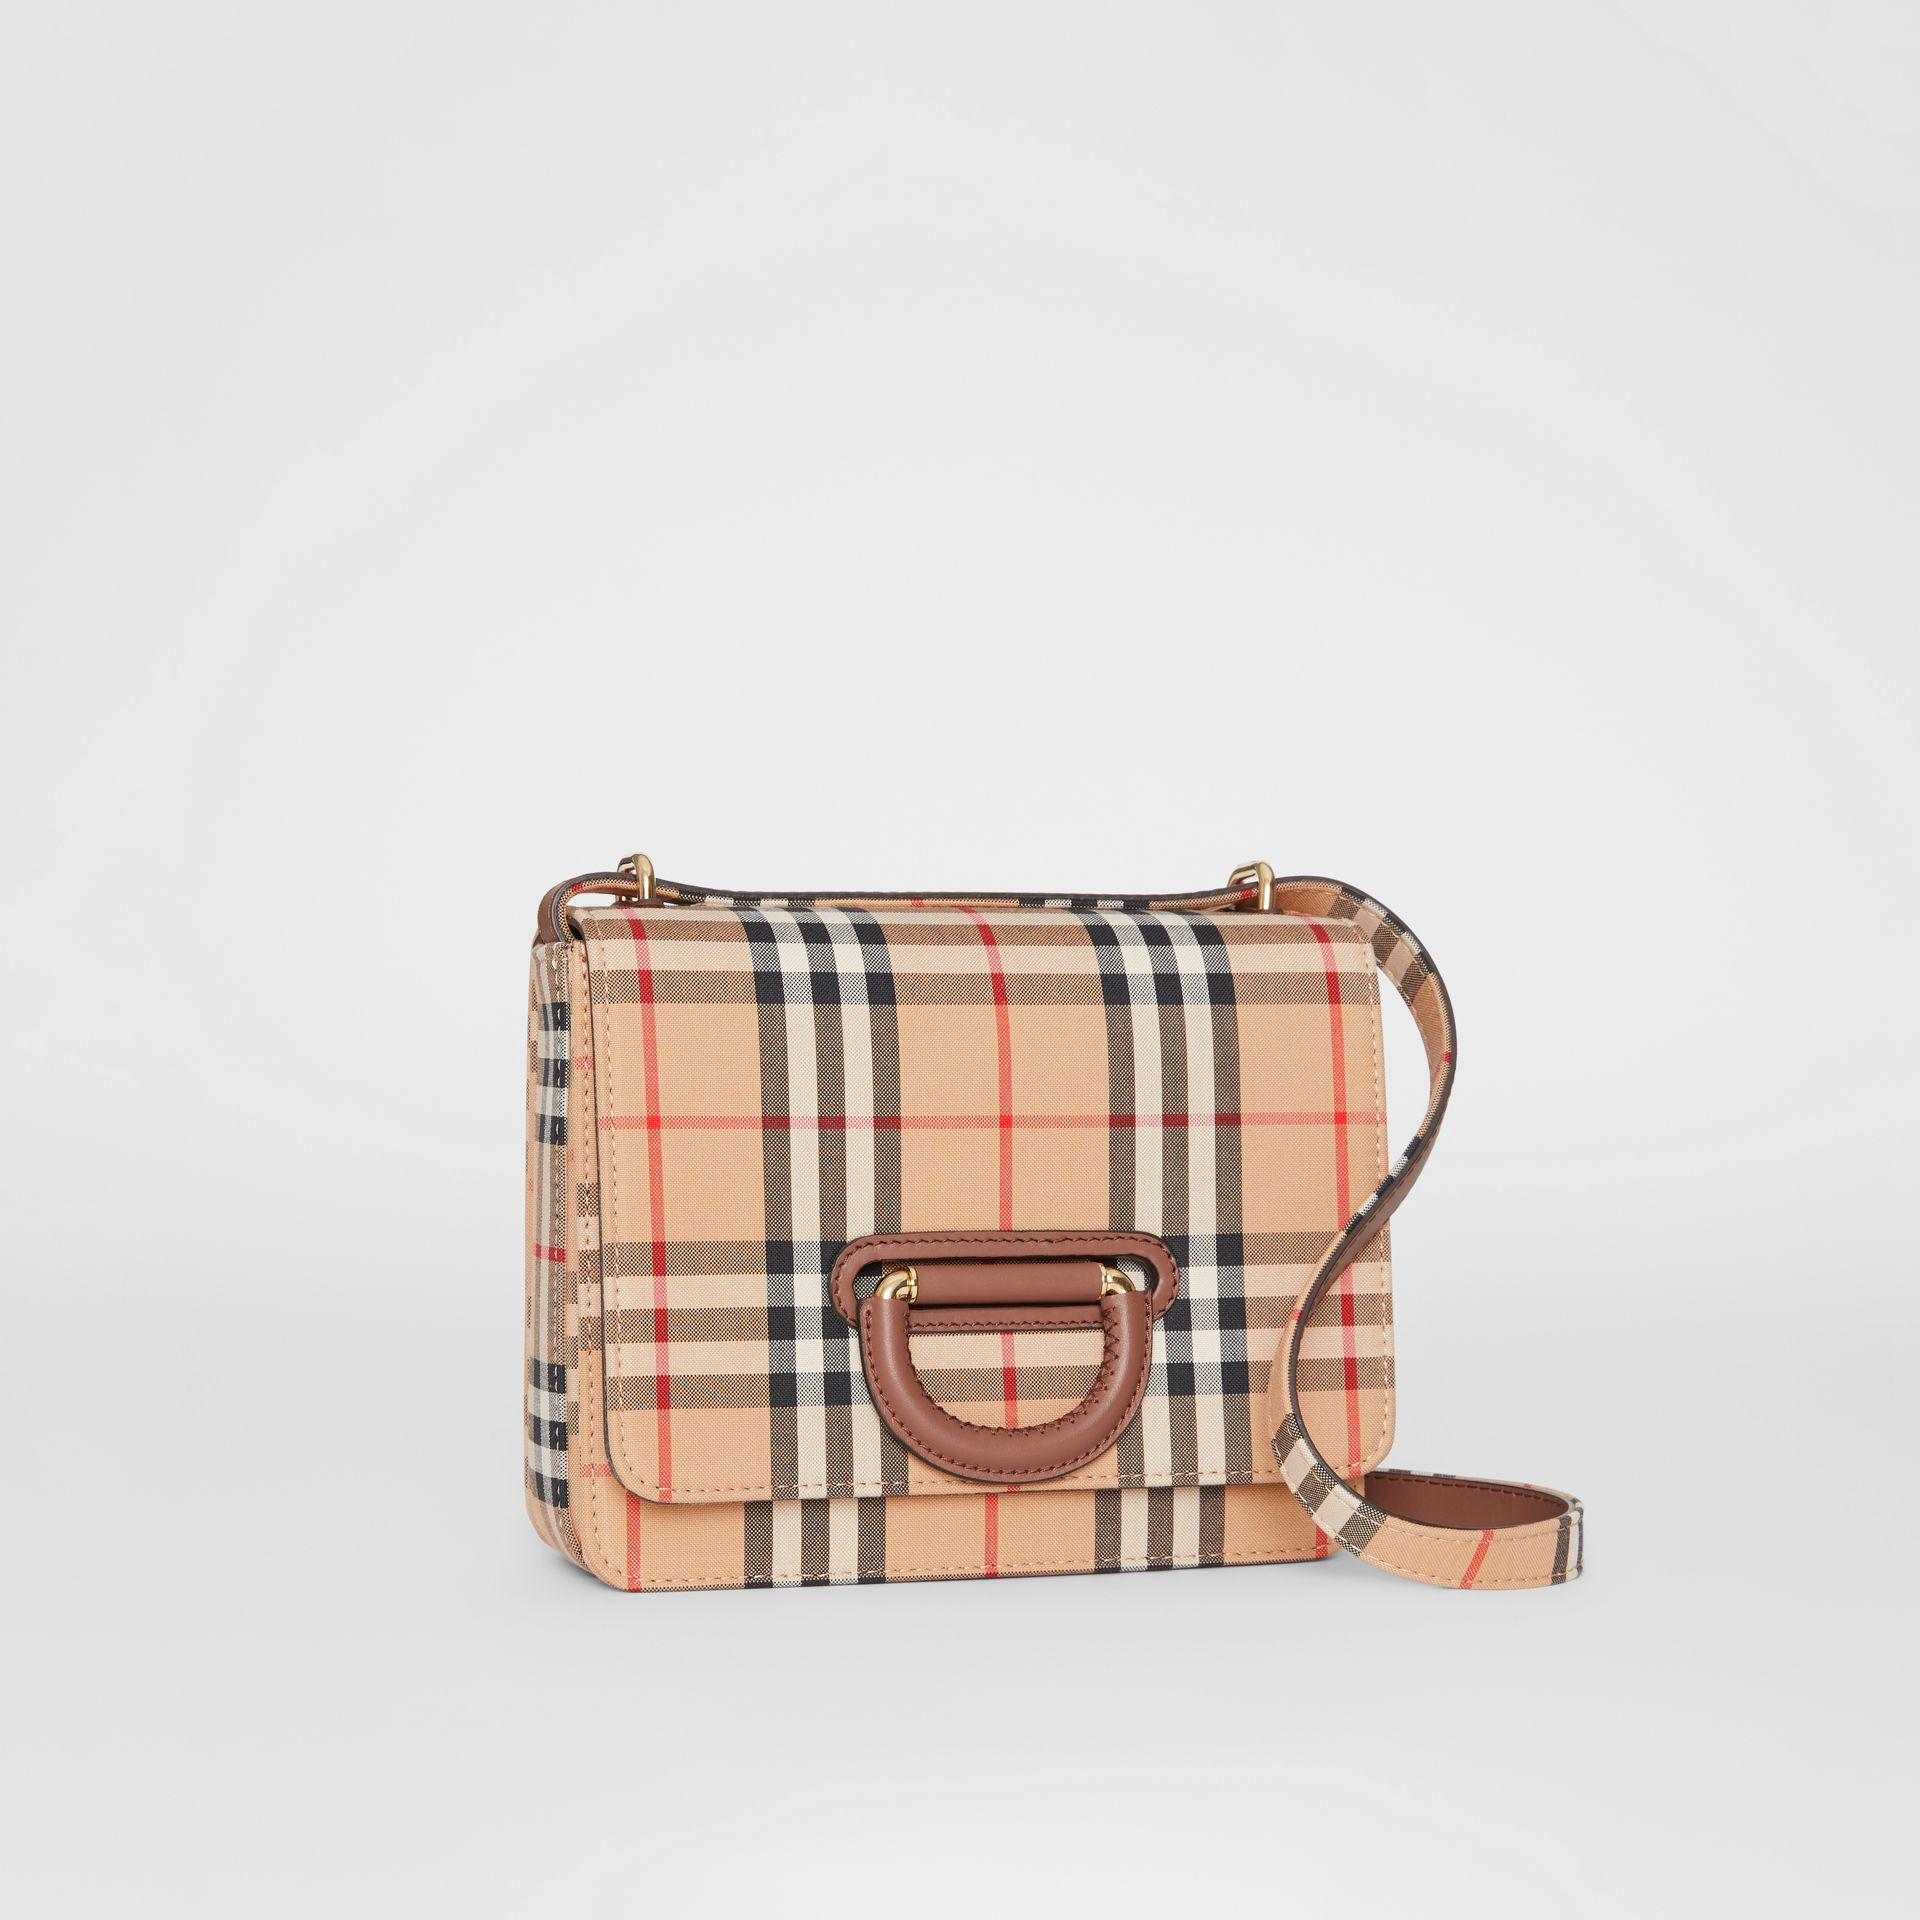 Petit sac The D-ring en coton Vintage check (Beige D'archive) - Femme | Burberry - photo de la galerie 6